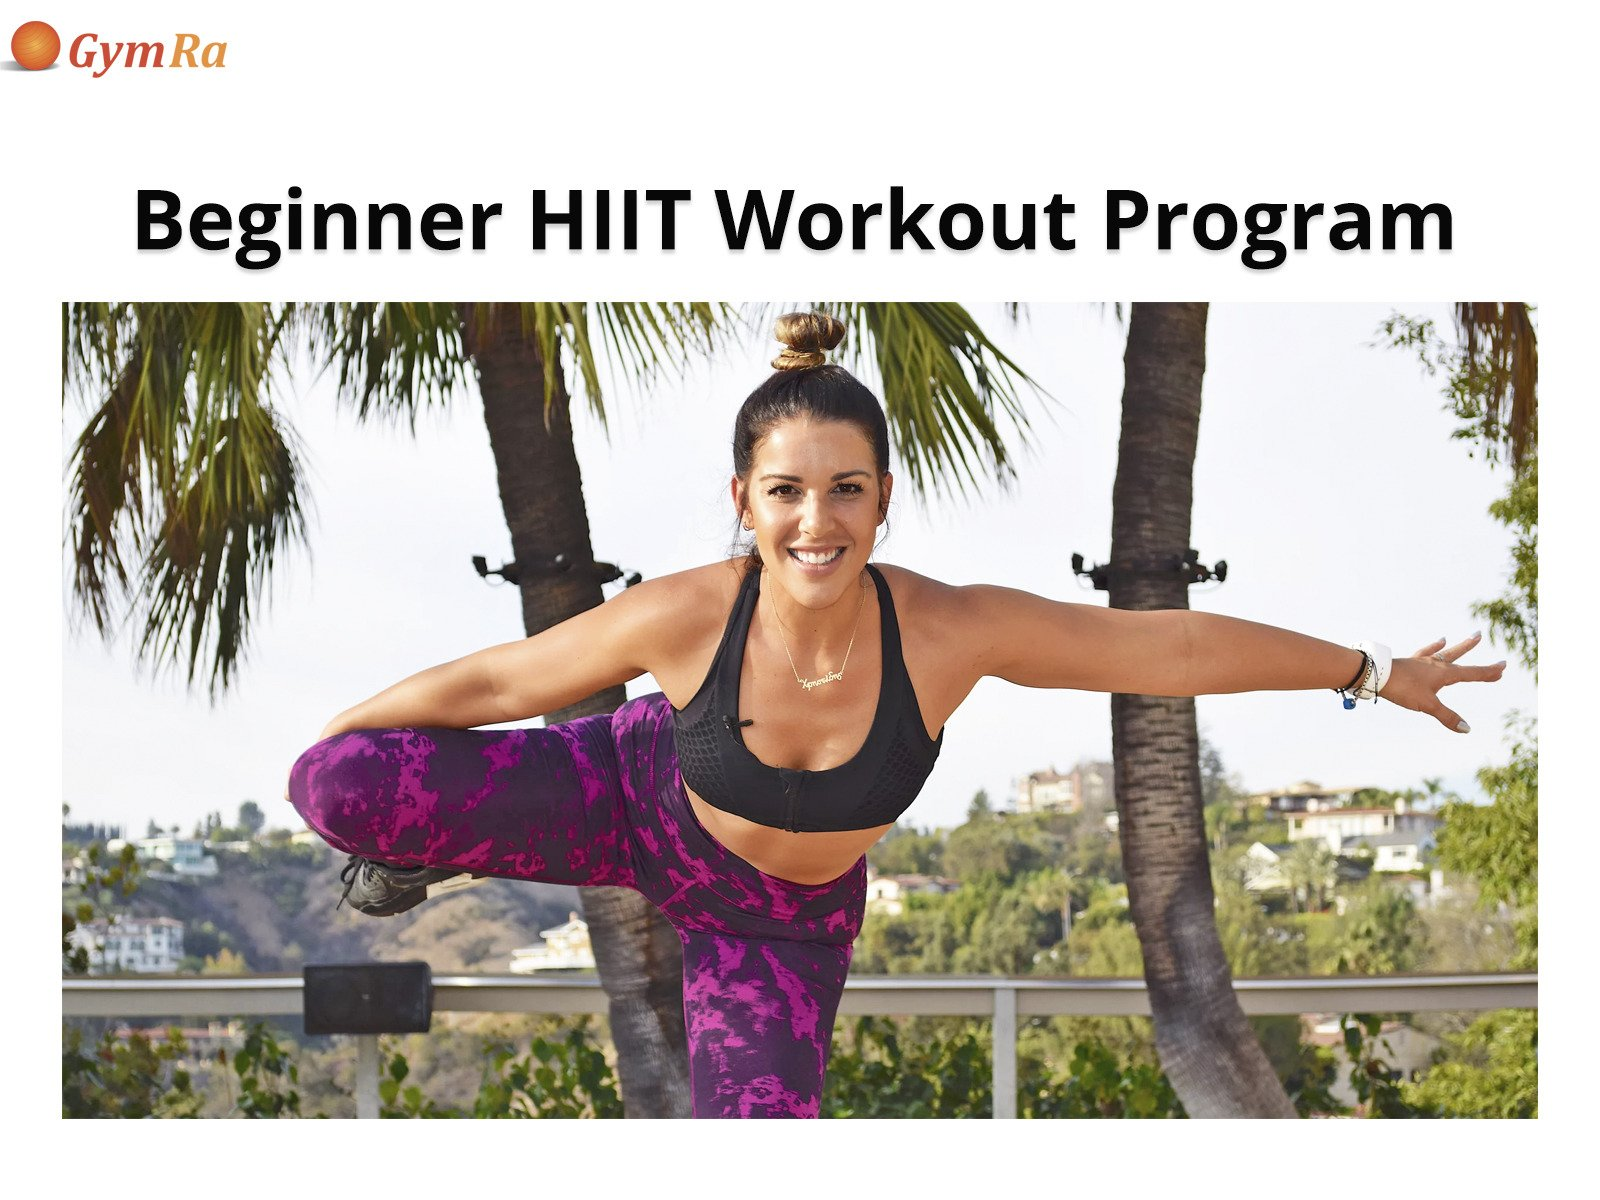 Beginner HIIT Workout Program - Season 1